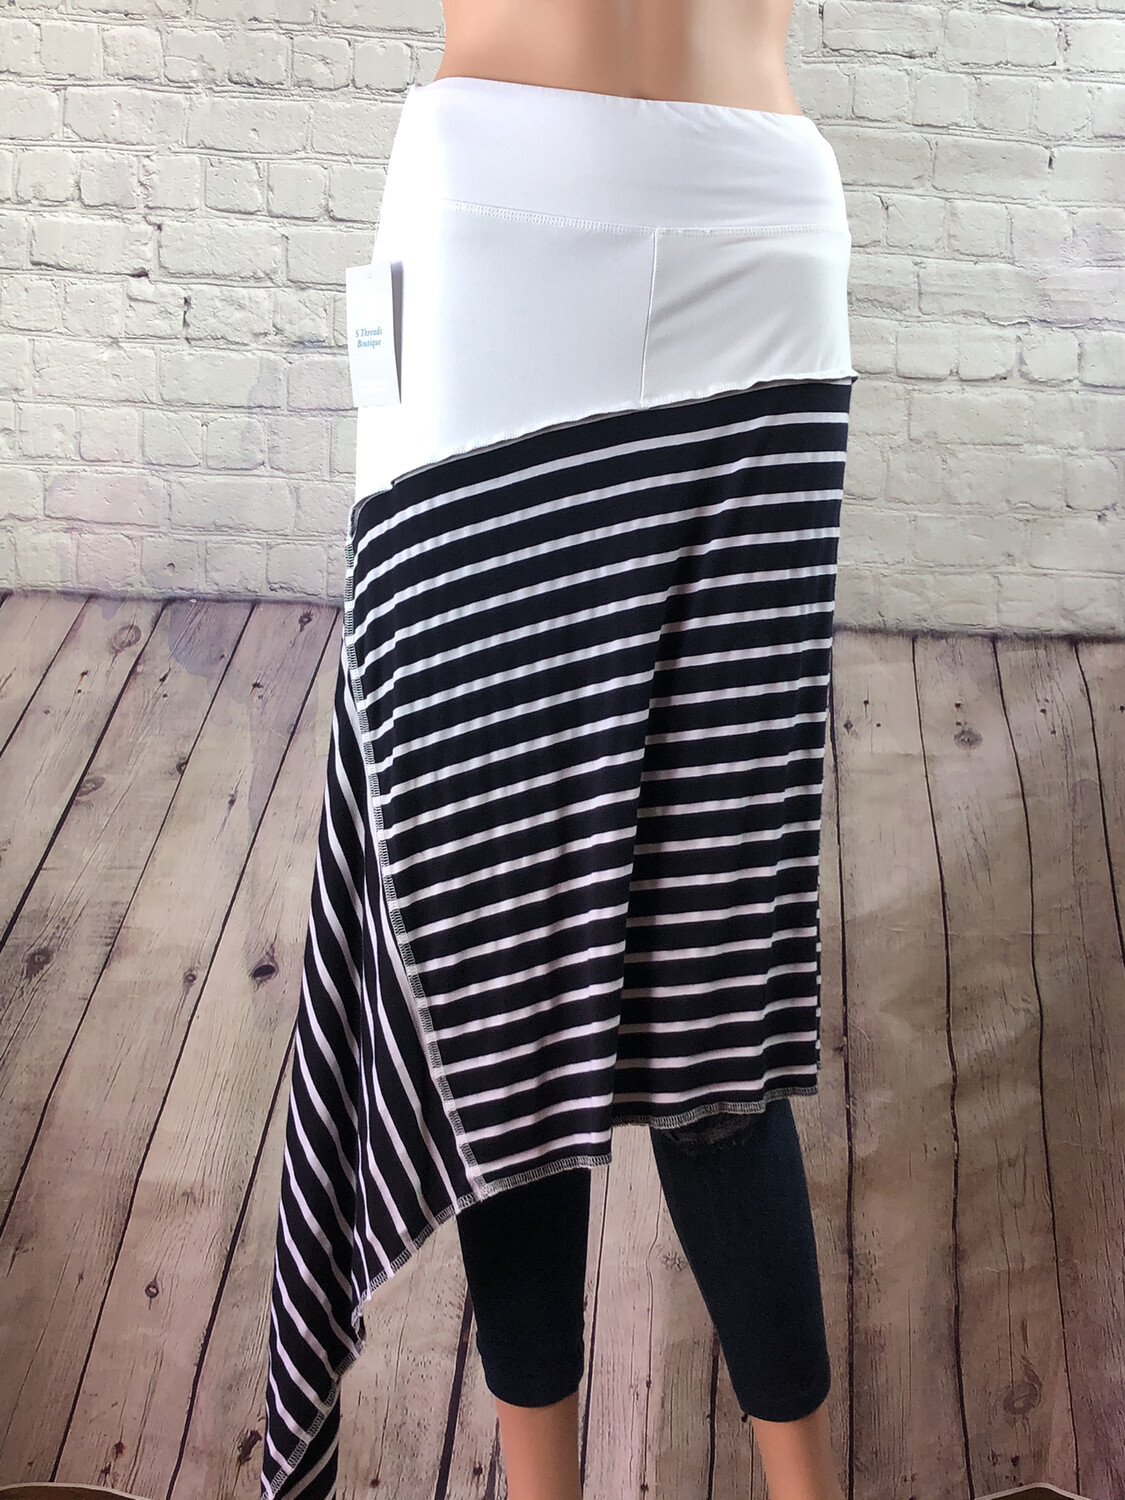 S Threads Upcycled One Size Spandex Band Navy and White Striped Asymmetrical Skirt